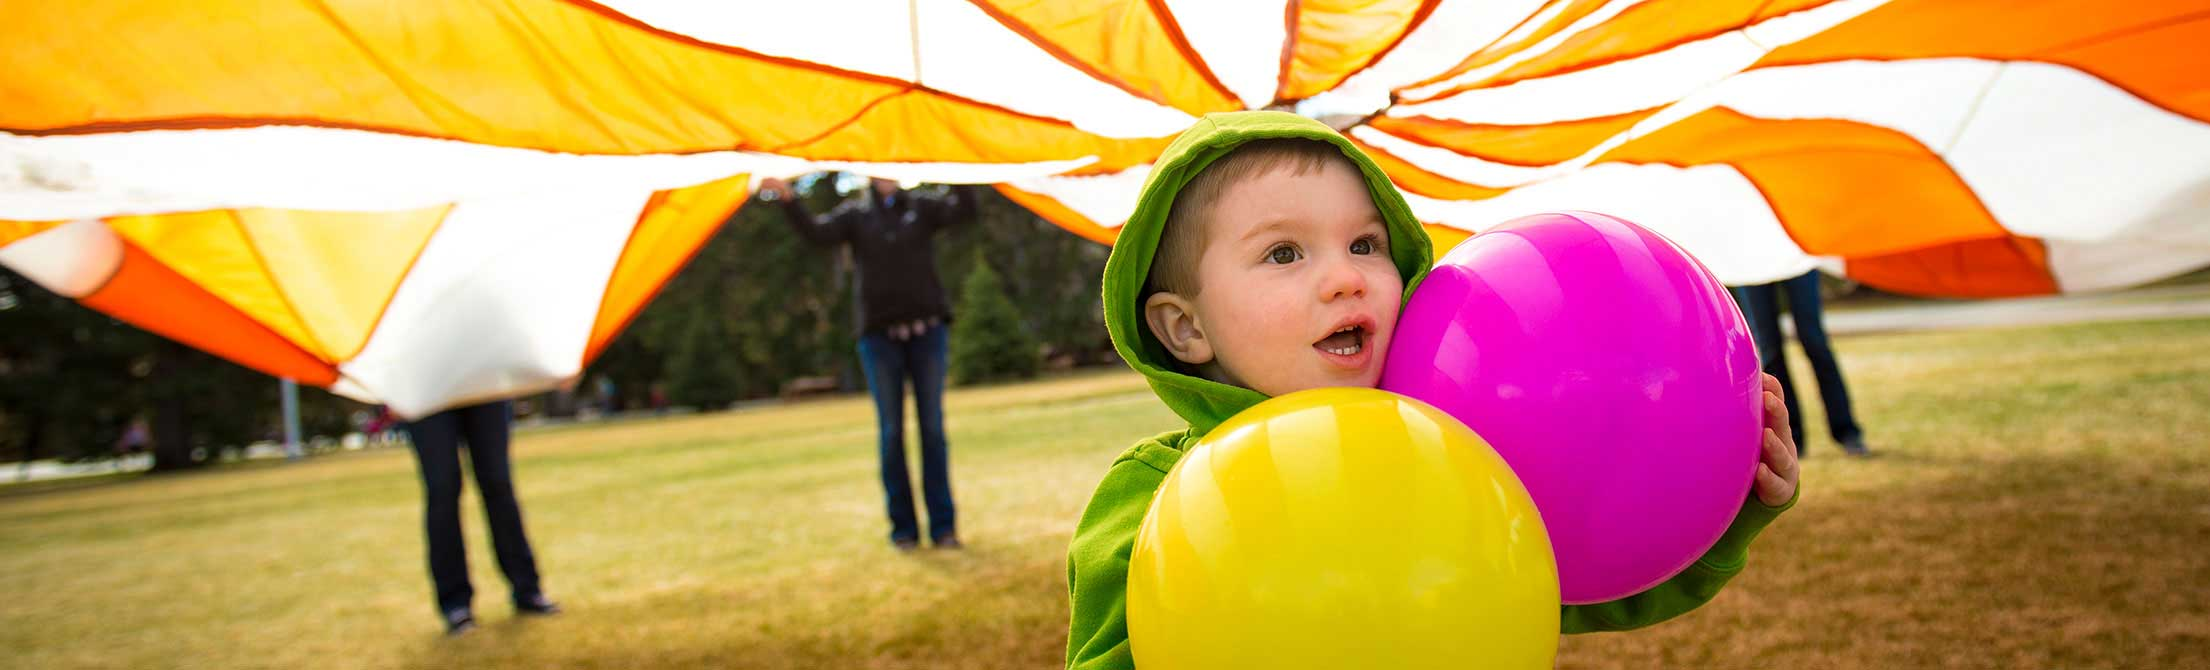 young child holding balloons and wearing a green jacket stands underneath an orange and white parachute